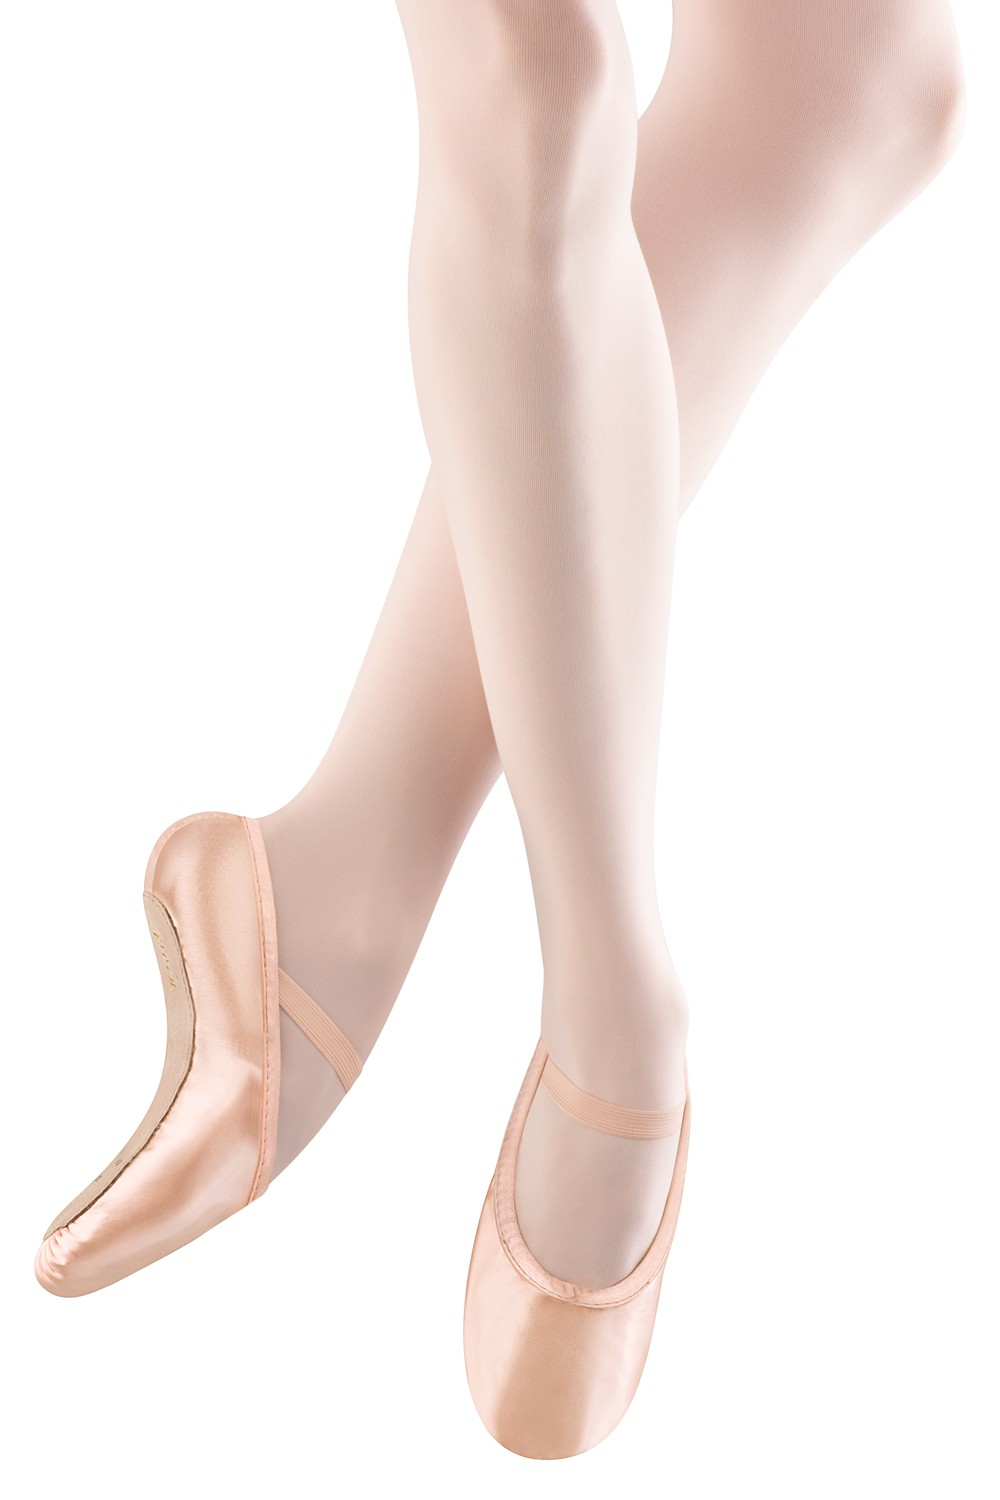 Chaussons De Danse, Satin Élastique - Fille Girl's Ballet Shoes